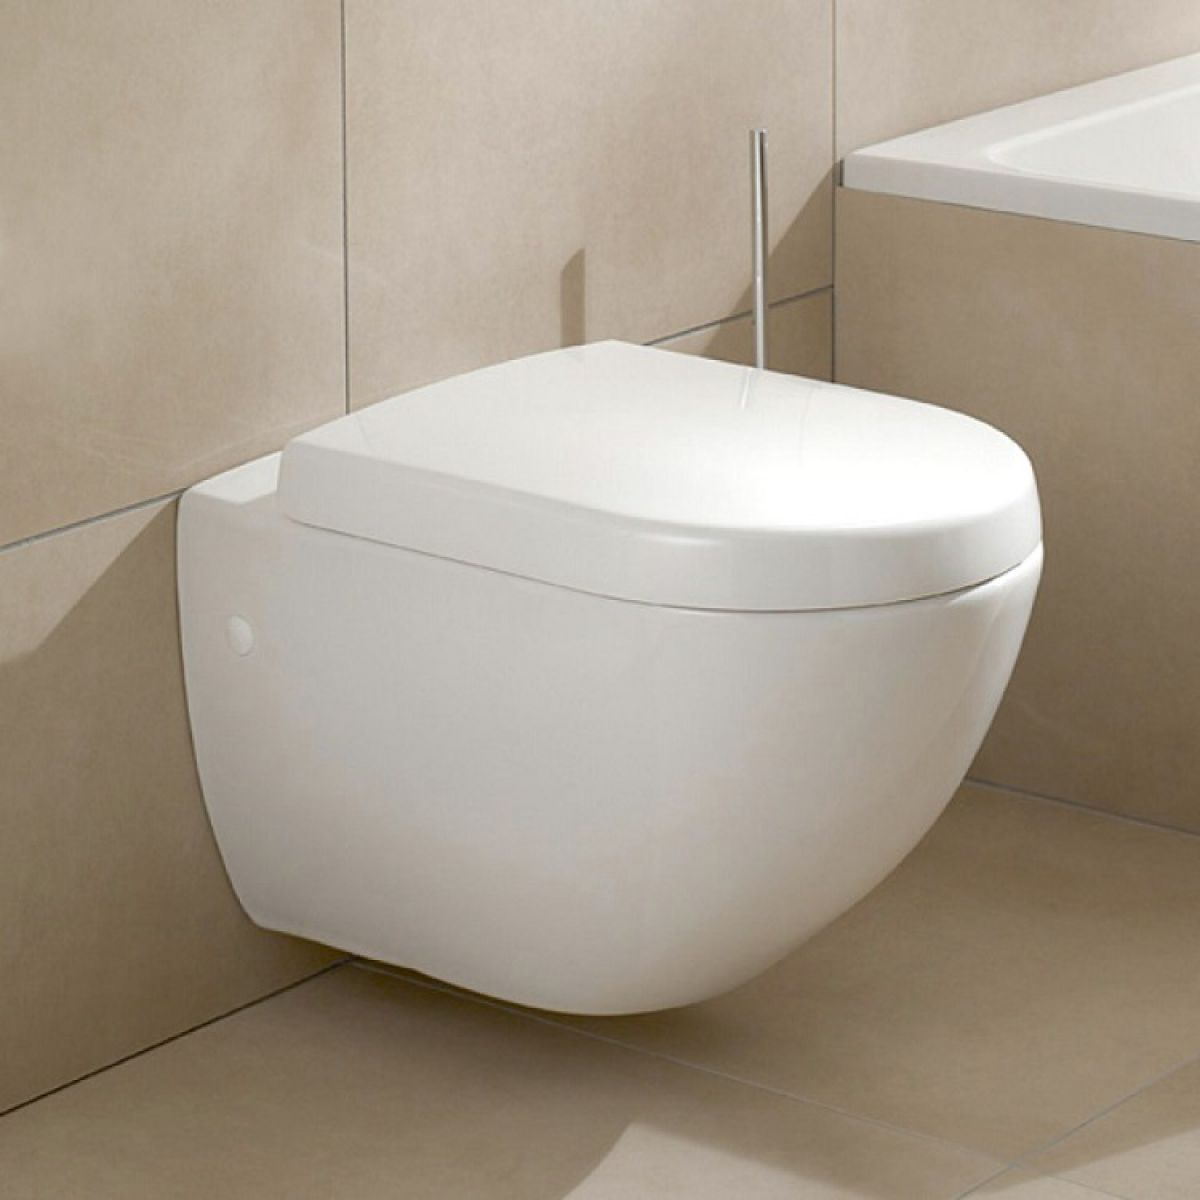 villeroy boch subway 2 0 compact wall hung toilet uk bathrooms. Black Bedroom Furniture Sets. Home Design Ideas